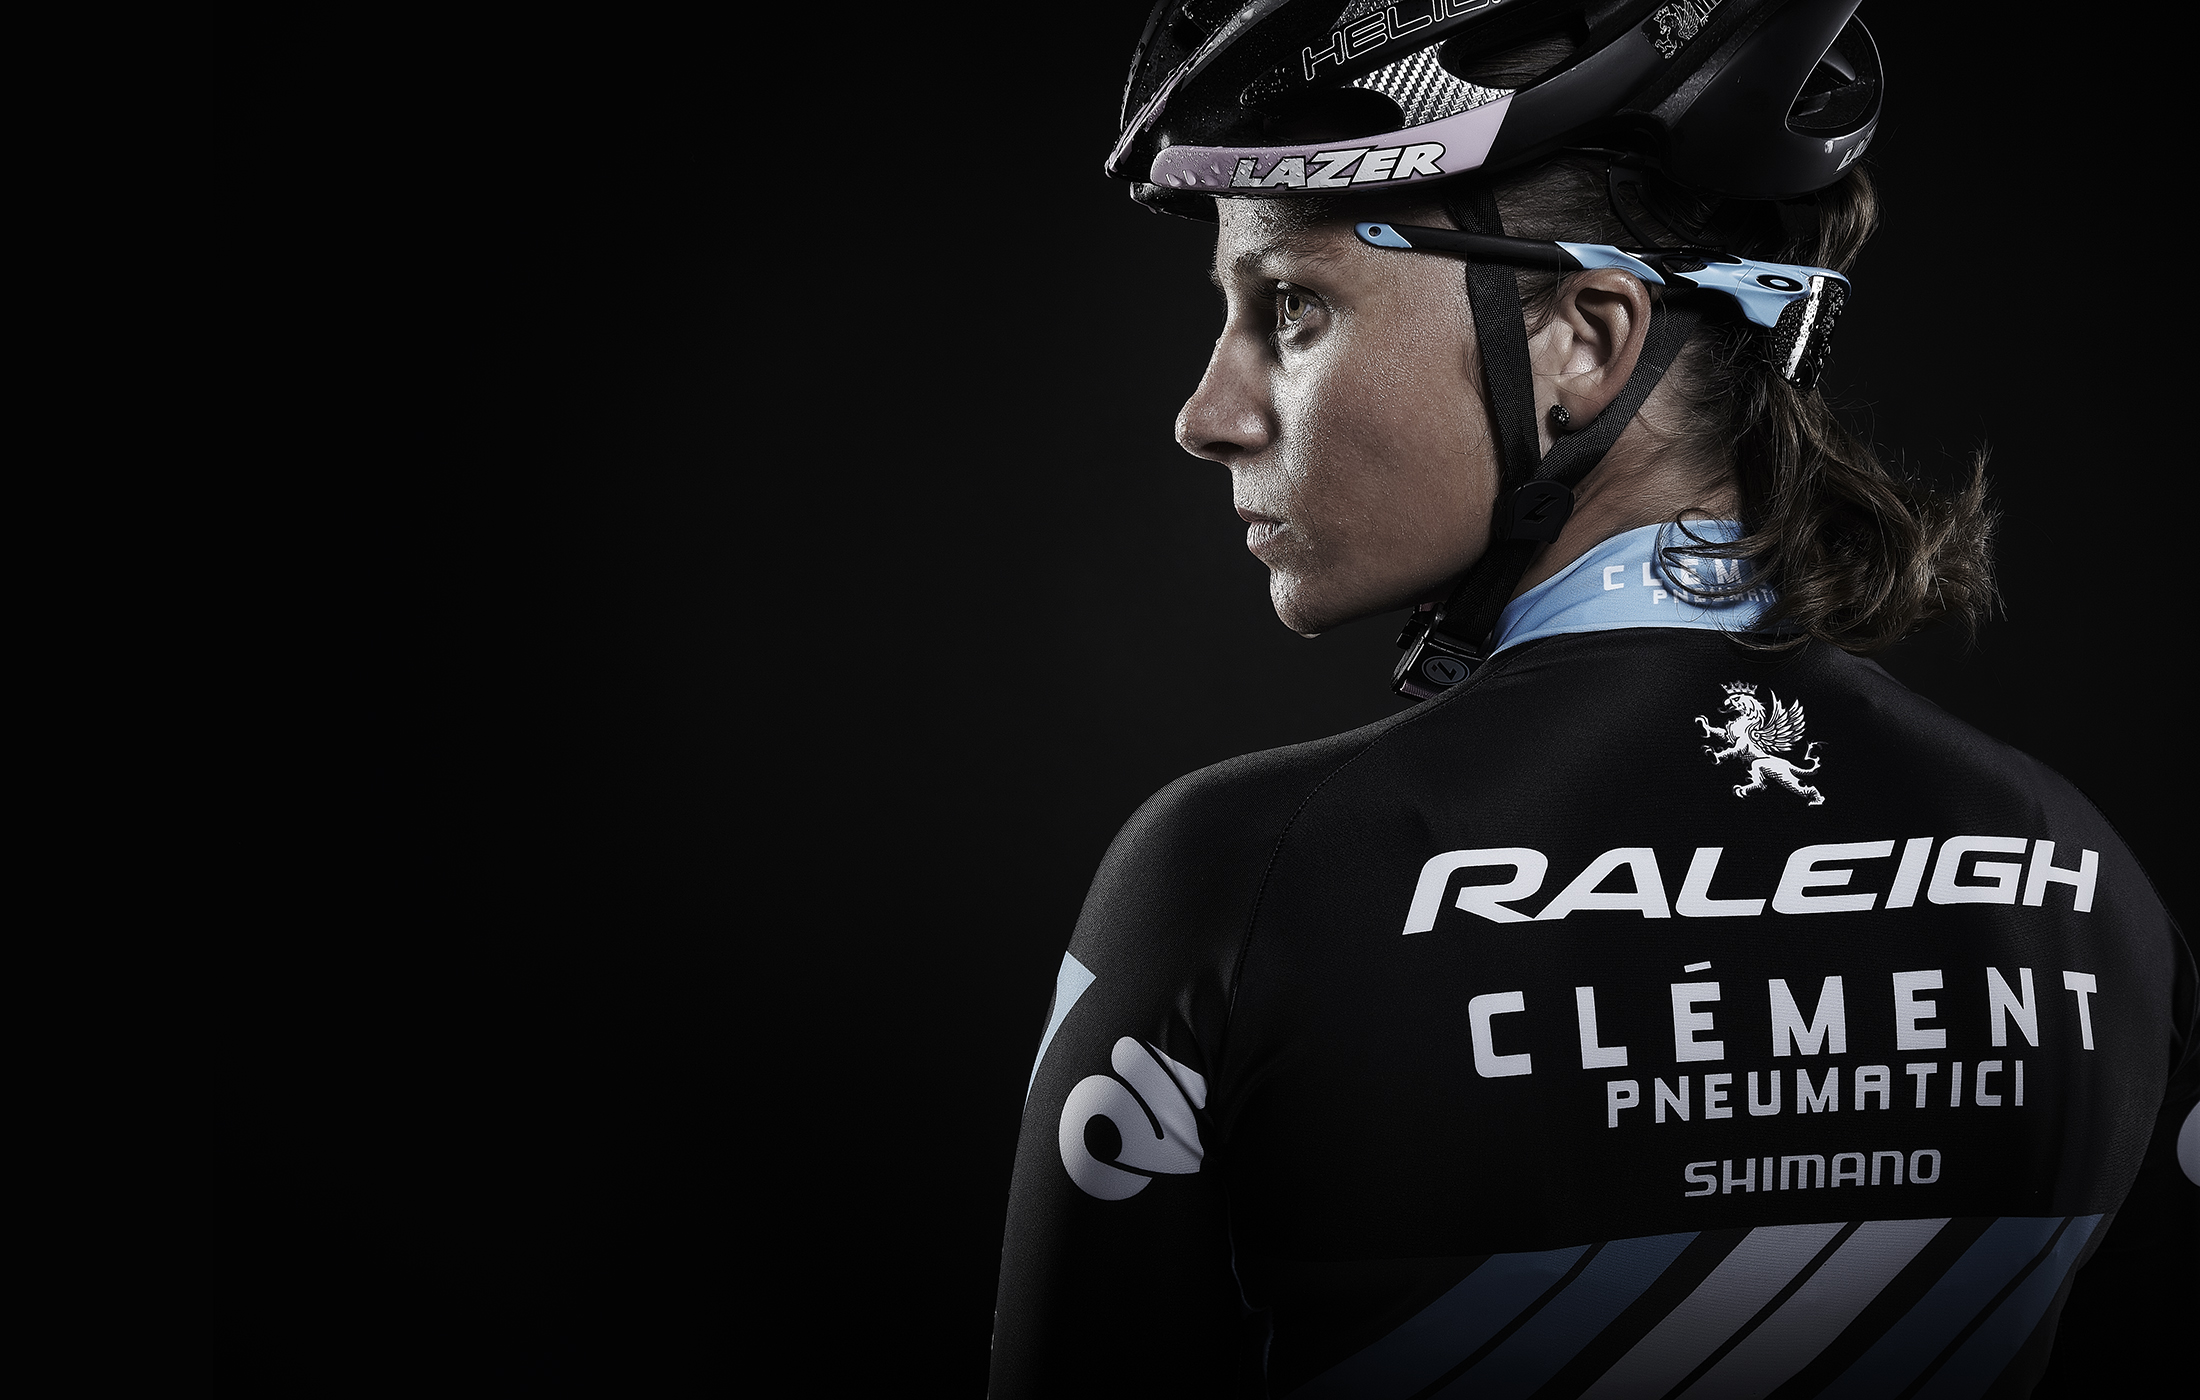 Caroline Mani / Raleigh-Clement CX Team